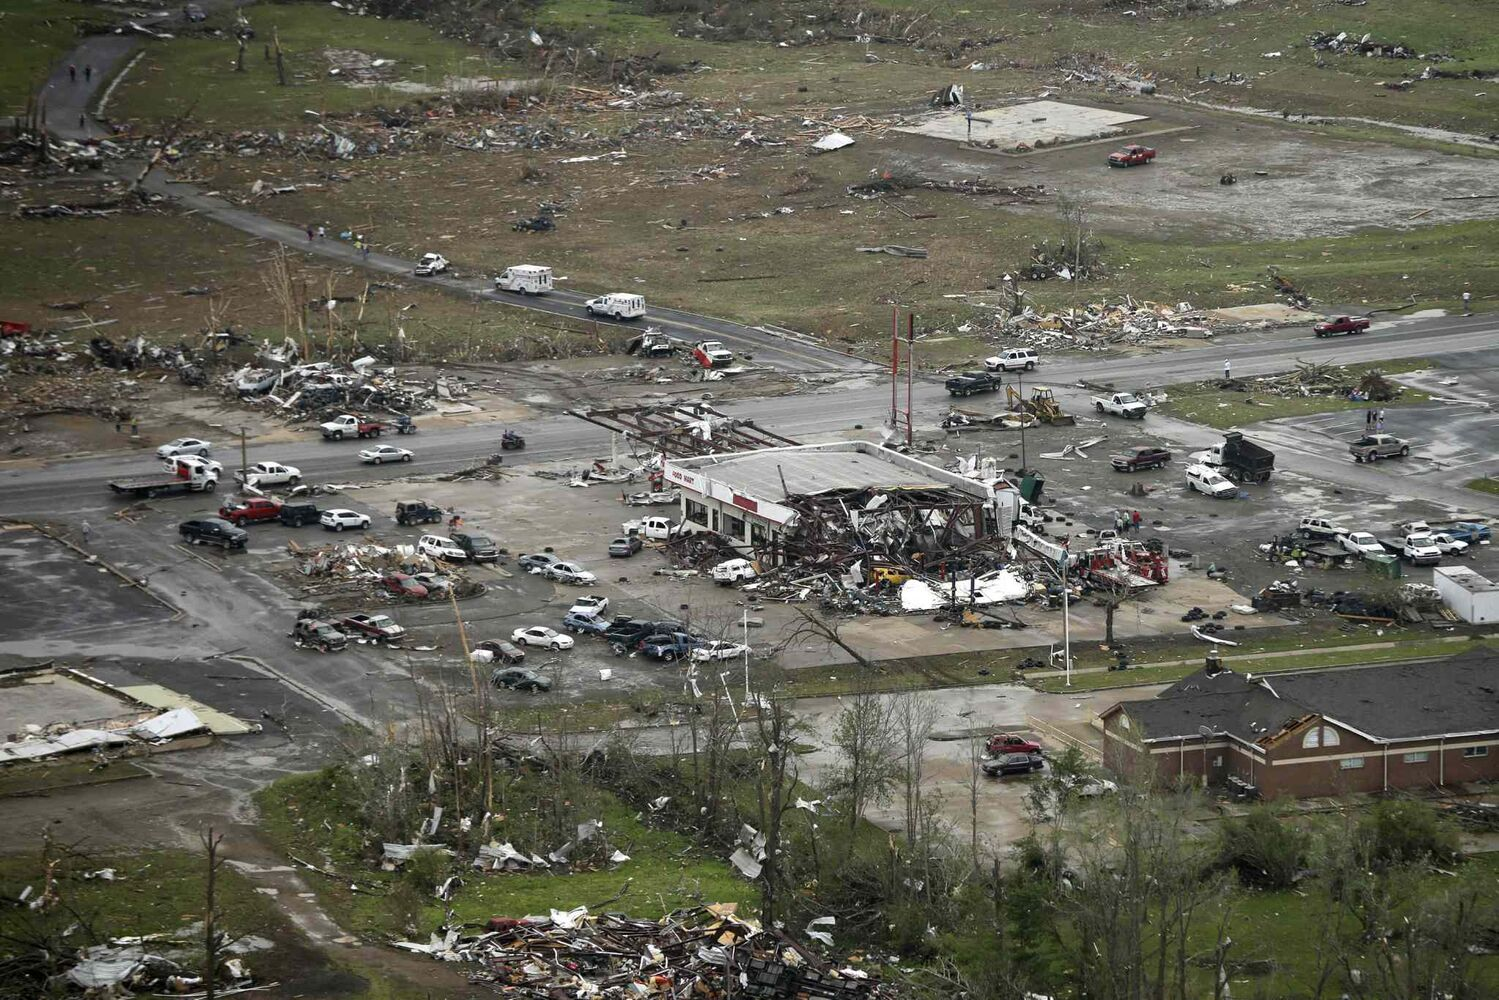 A storm-damaged convenience store, center, sits among rubble along U.S. Highway 64 in Vilonia, Ark., Monday, April 28, 2014, after a tornado struck the town late Sunday.  (Danny Johnston / The Associated Press)